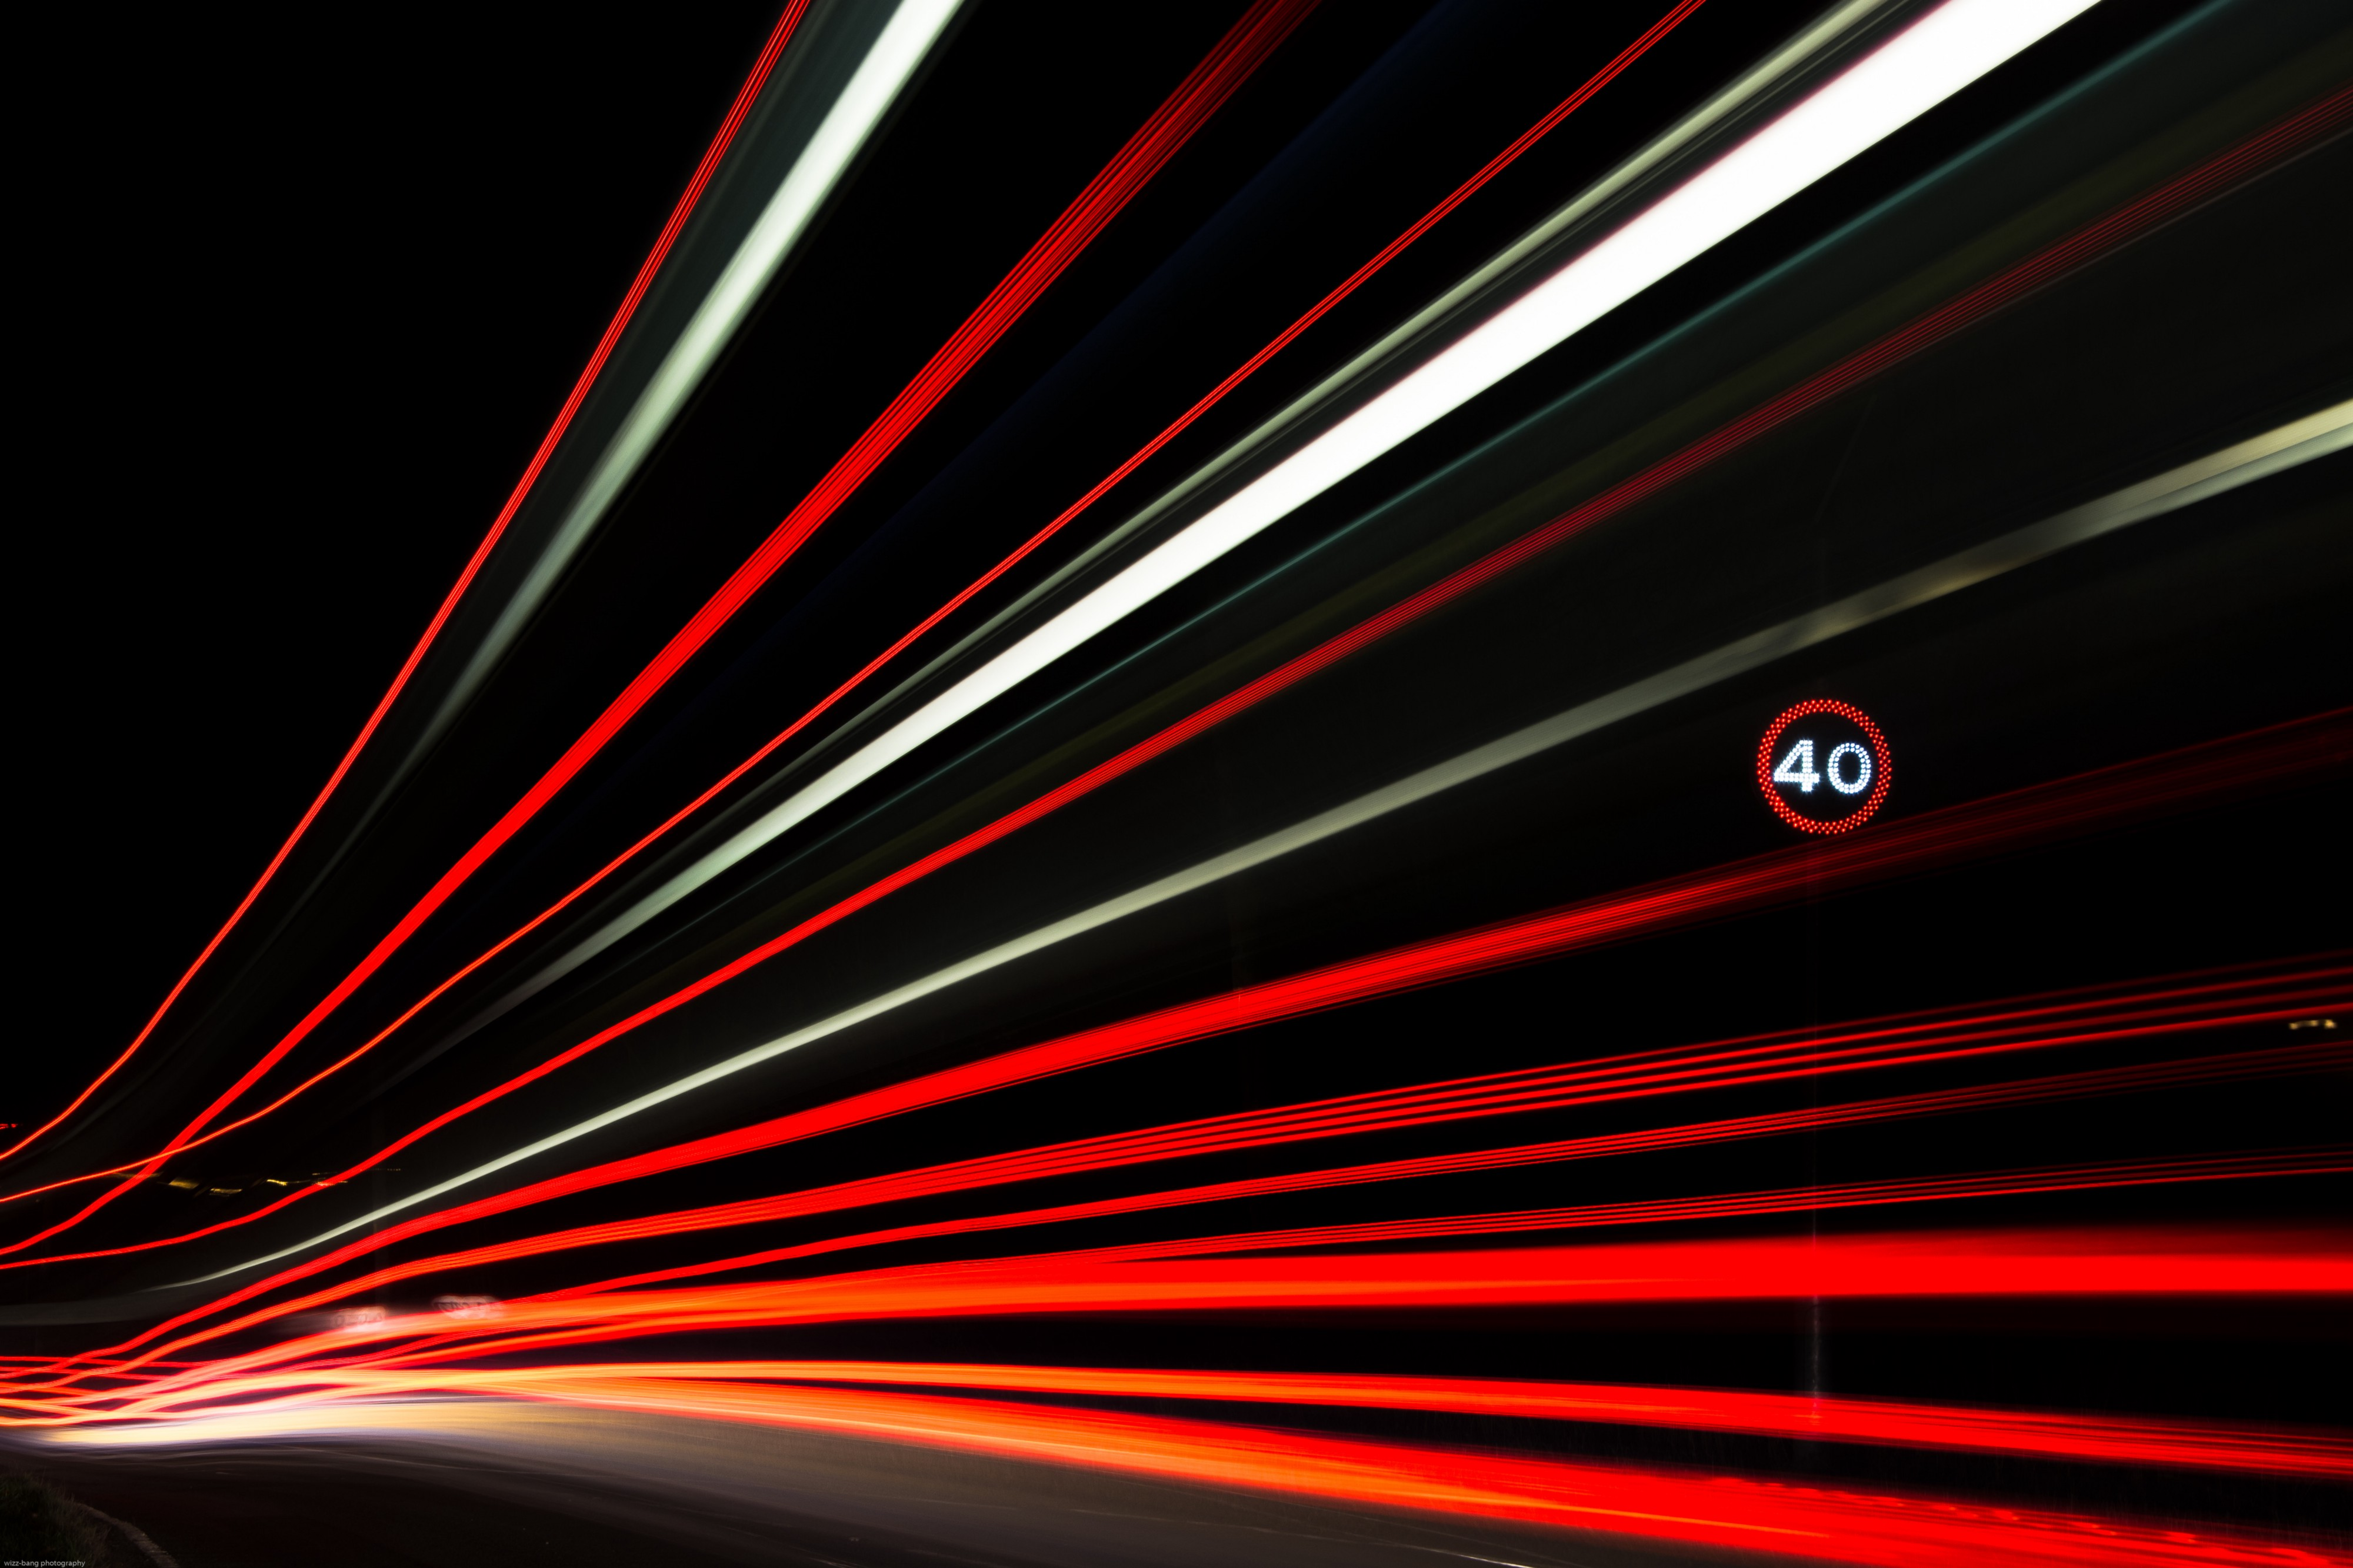 The Beginner's Guide to your Internet Speed - The Guide - Medium